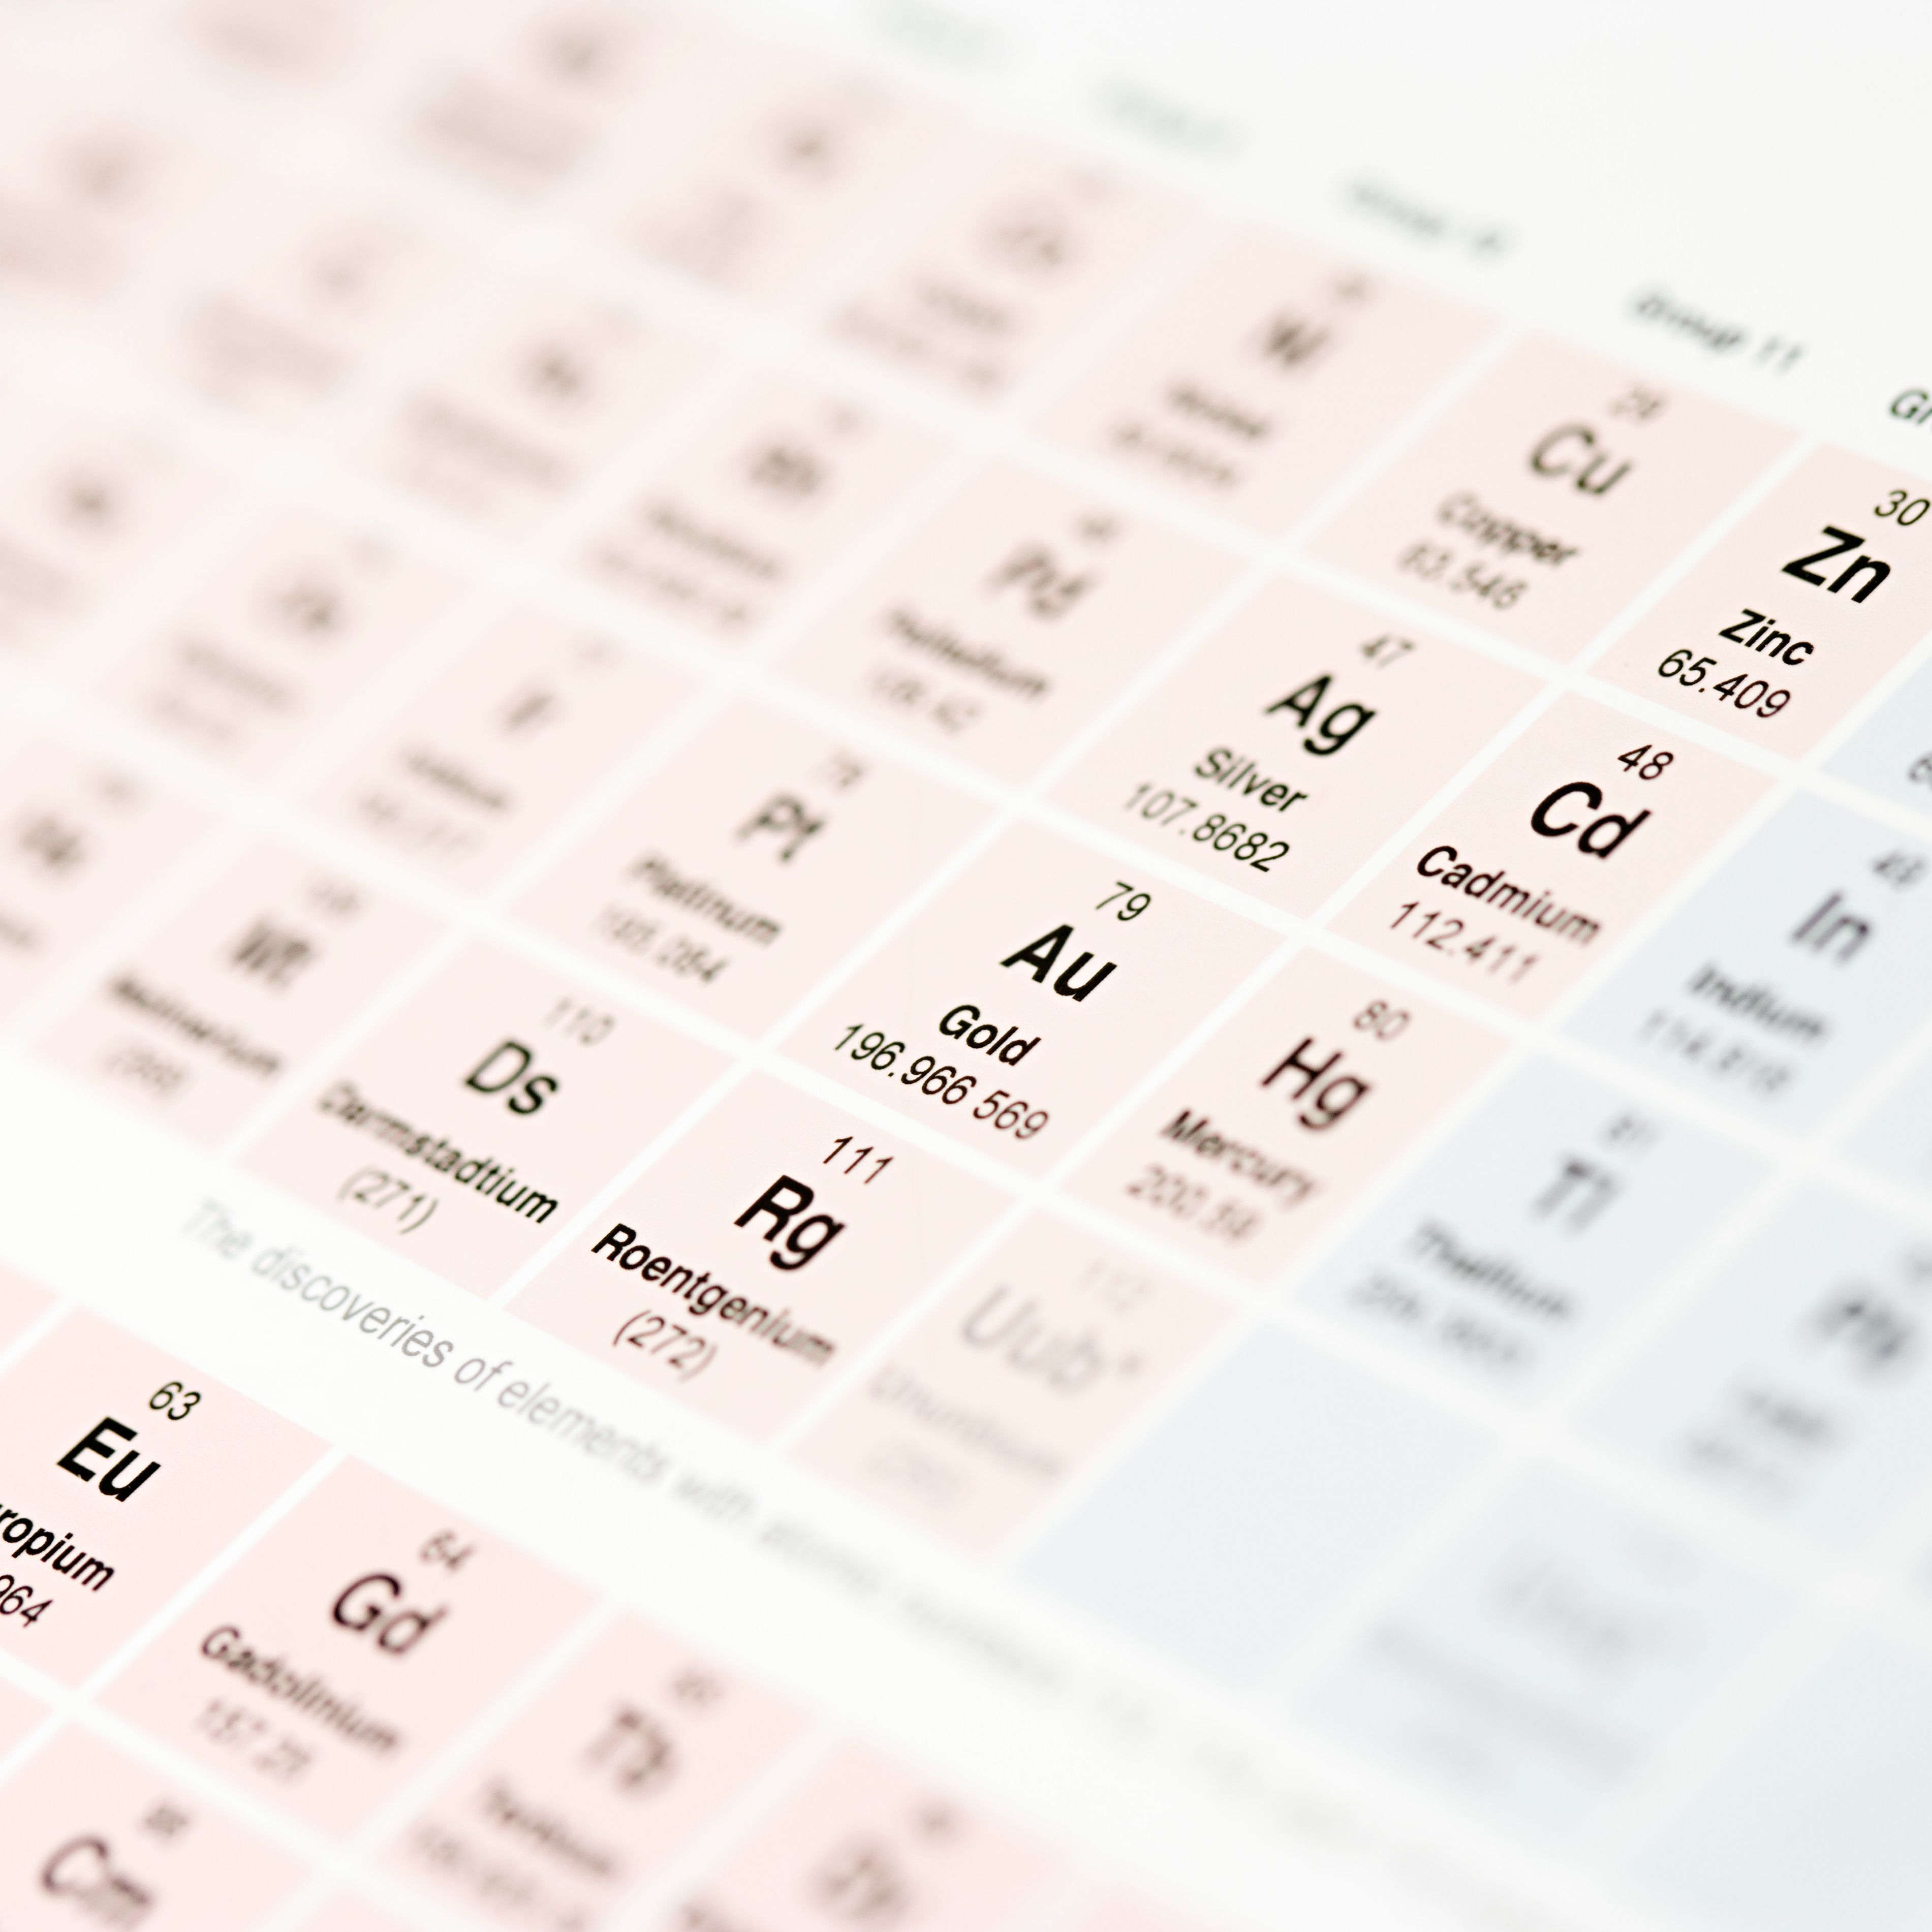 Adult Cd Universe list of naturally occurring elements